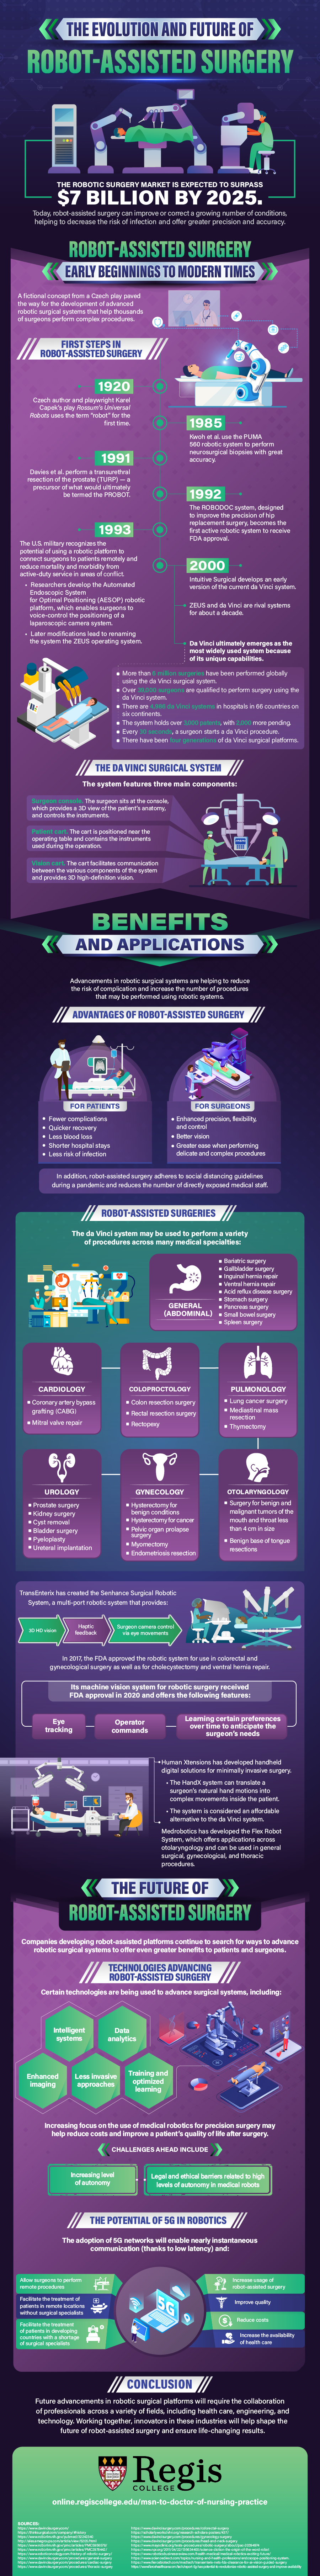 How robot-assisted surgery can impact care delivery now and in the future.